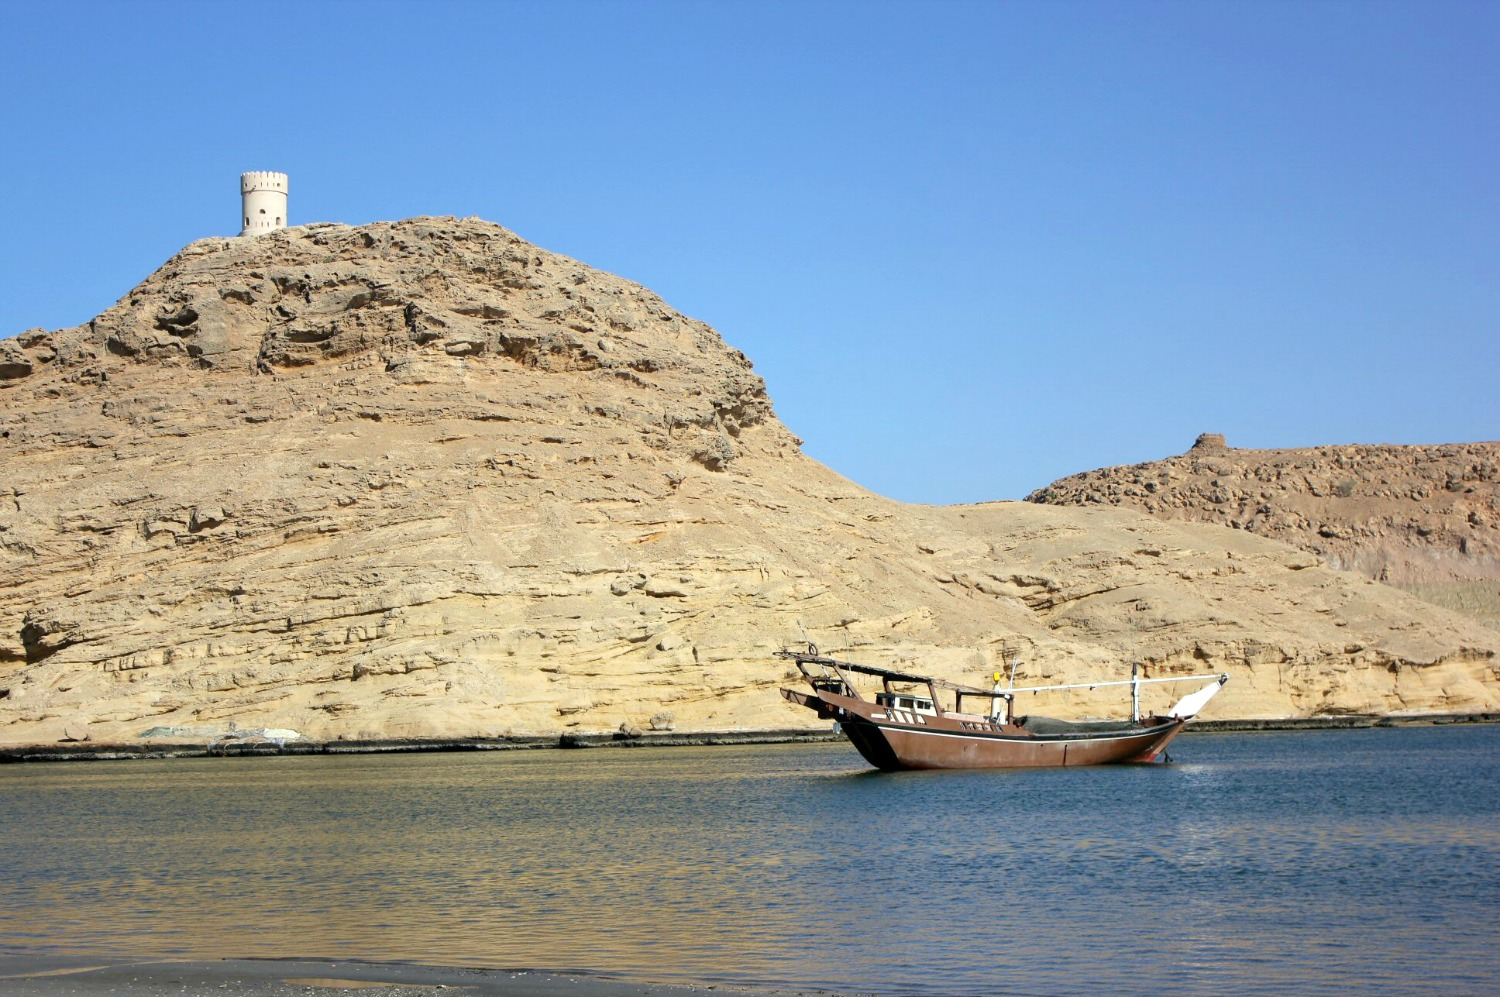 A wooden dhow boat in the water with a rock cliff behind at Sur in Oman - my nine reasons to visit Oman with kids